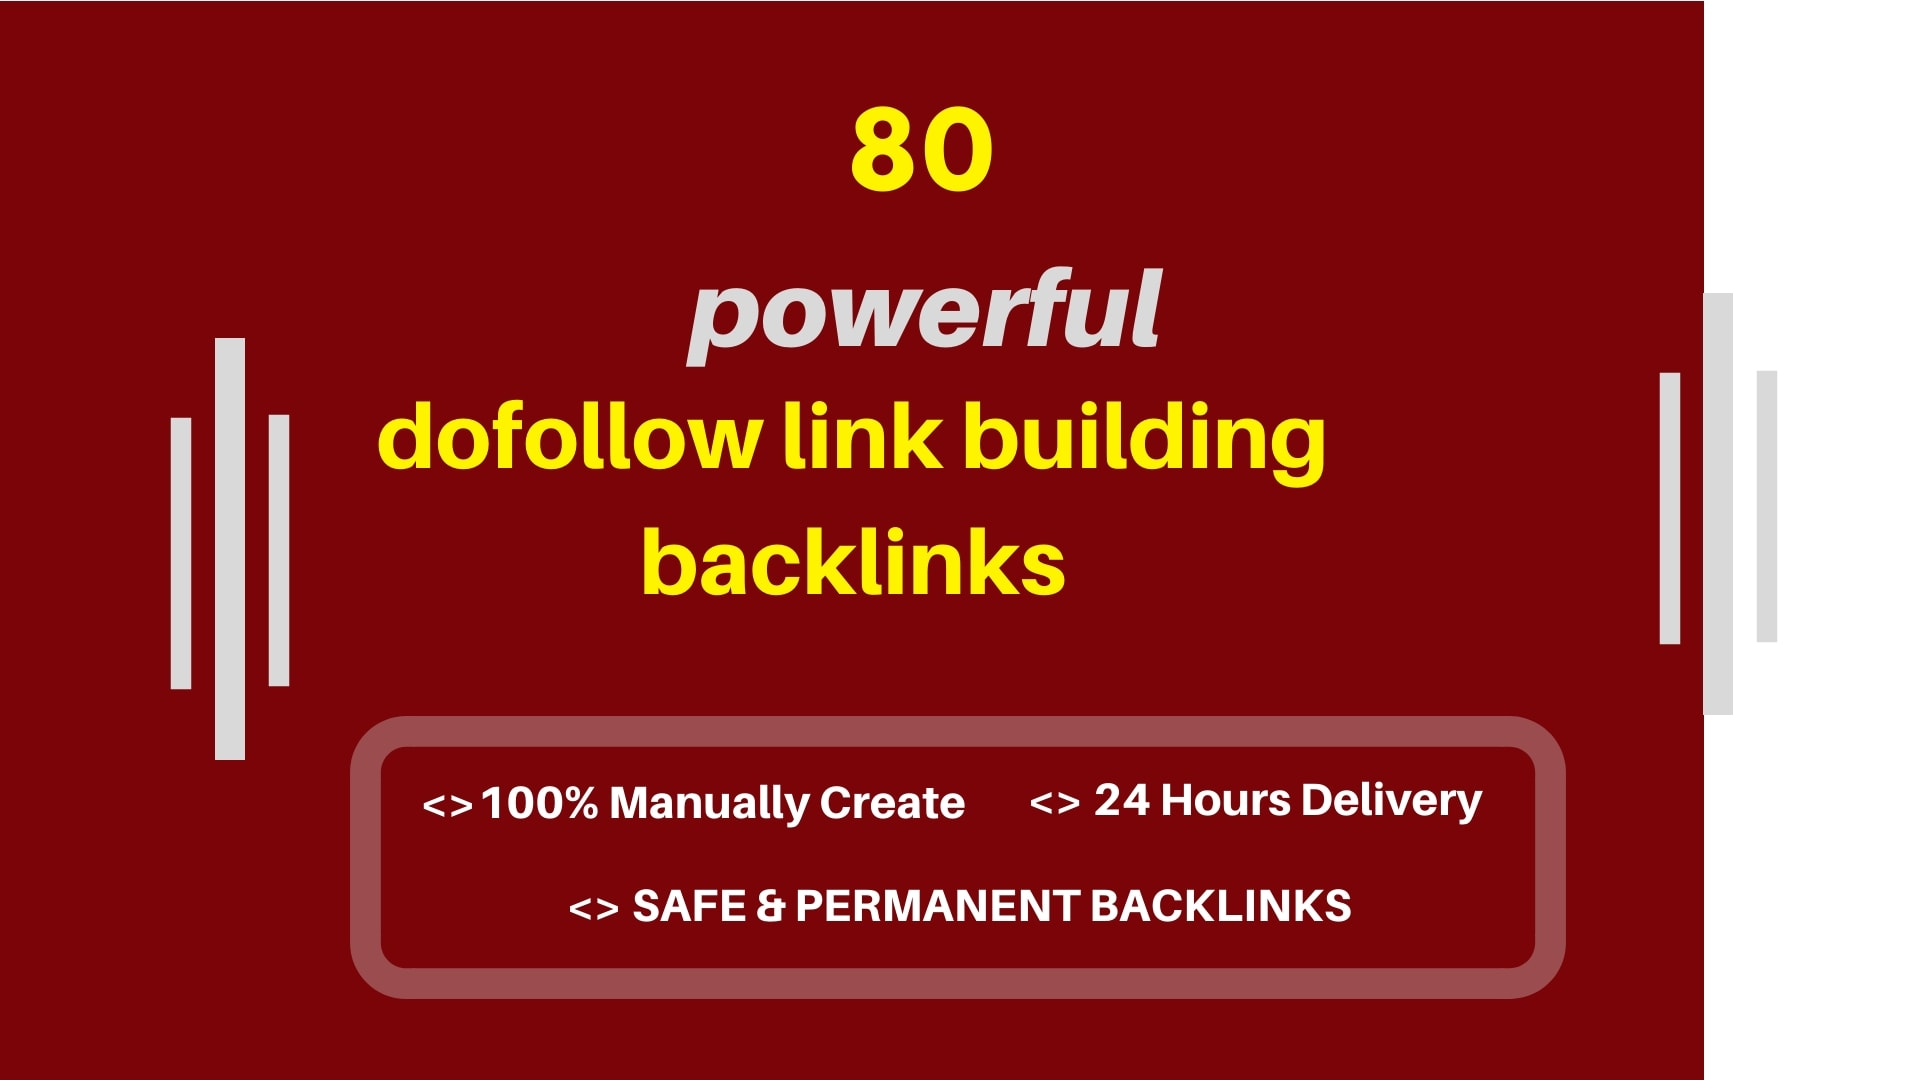 I wil create 80 powerfull dofollow blog comments backlinks